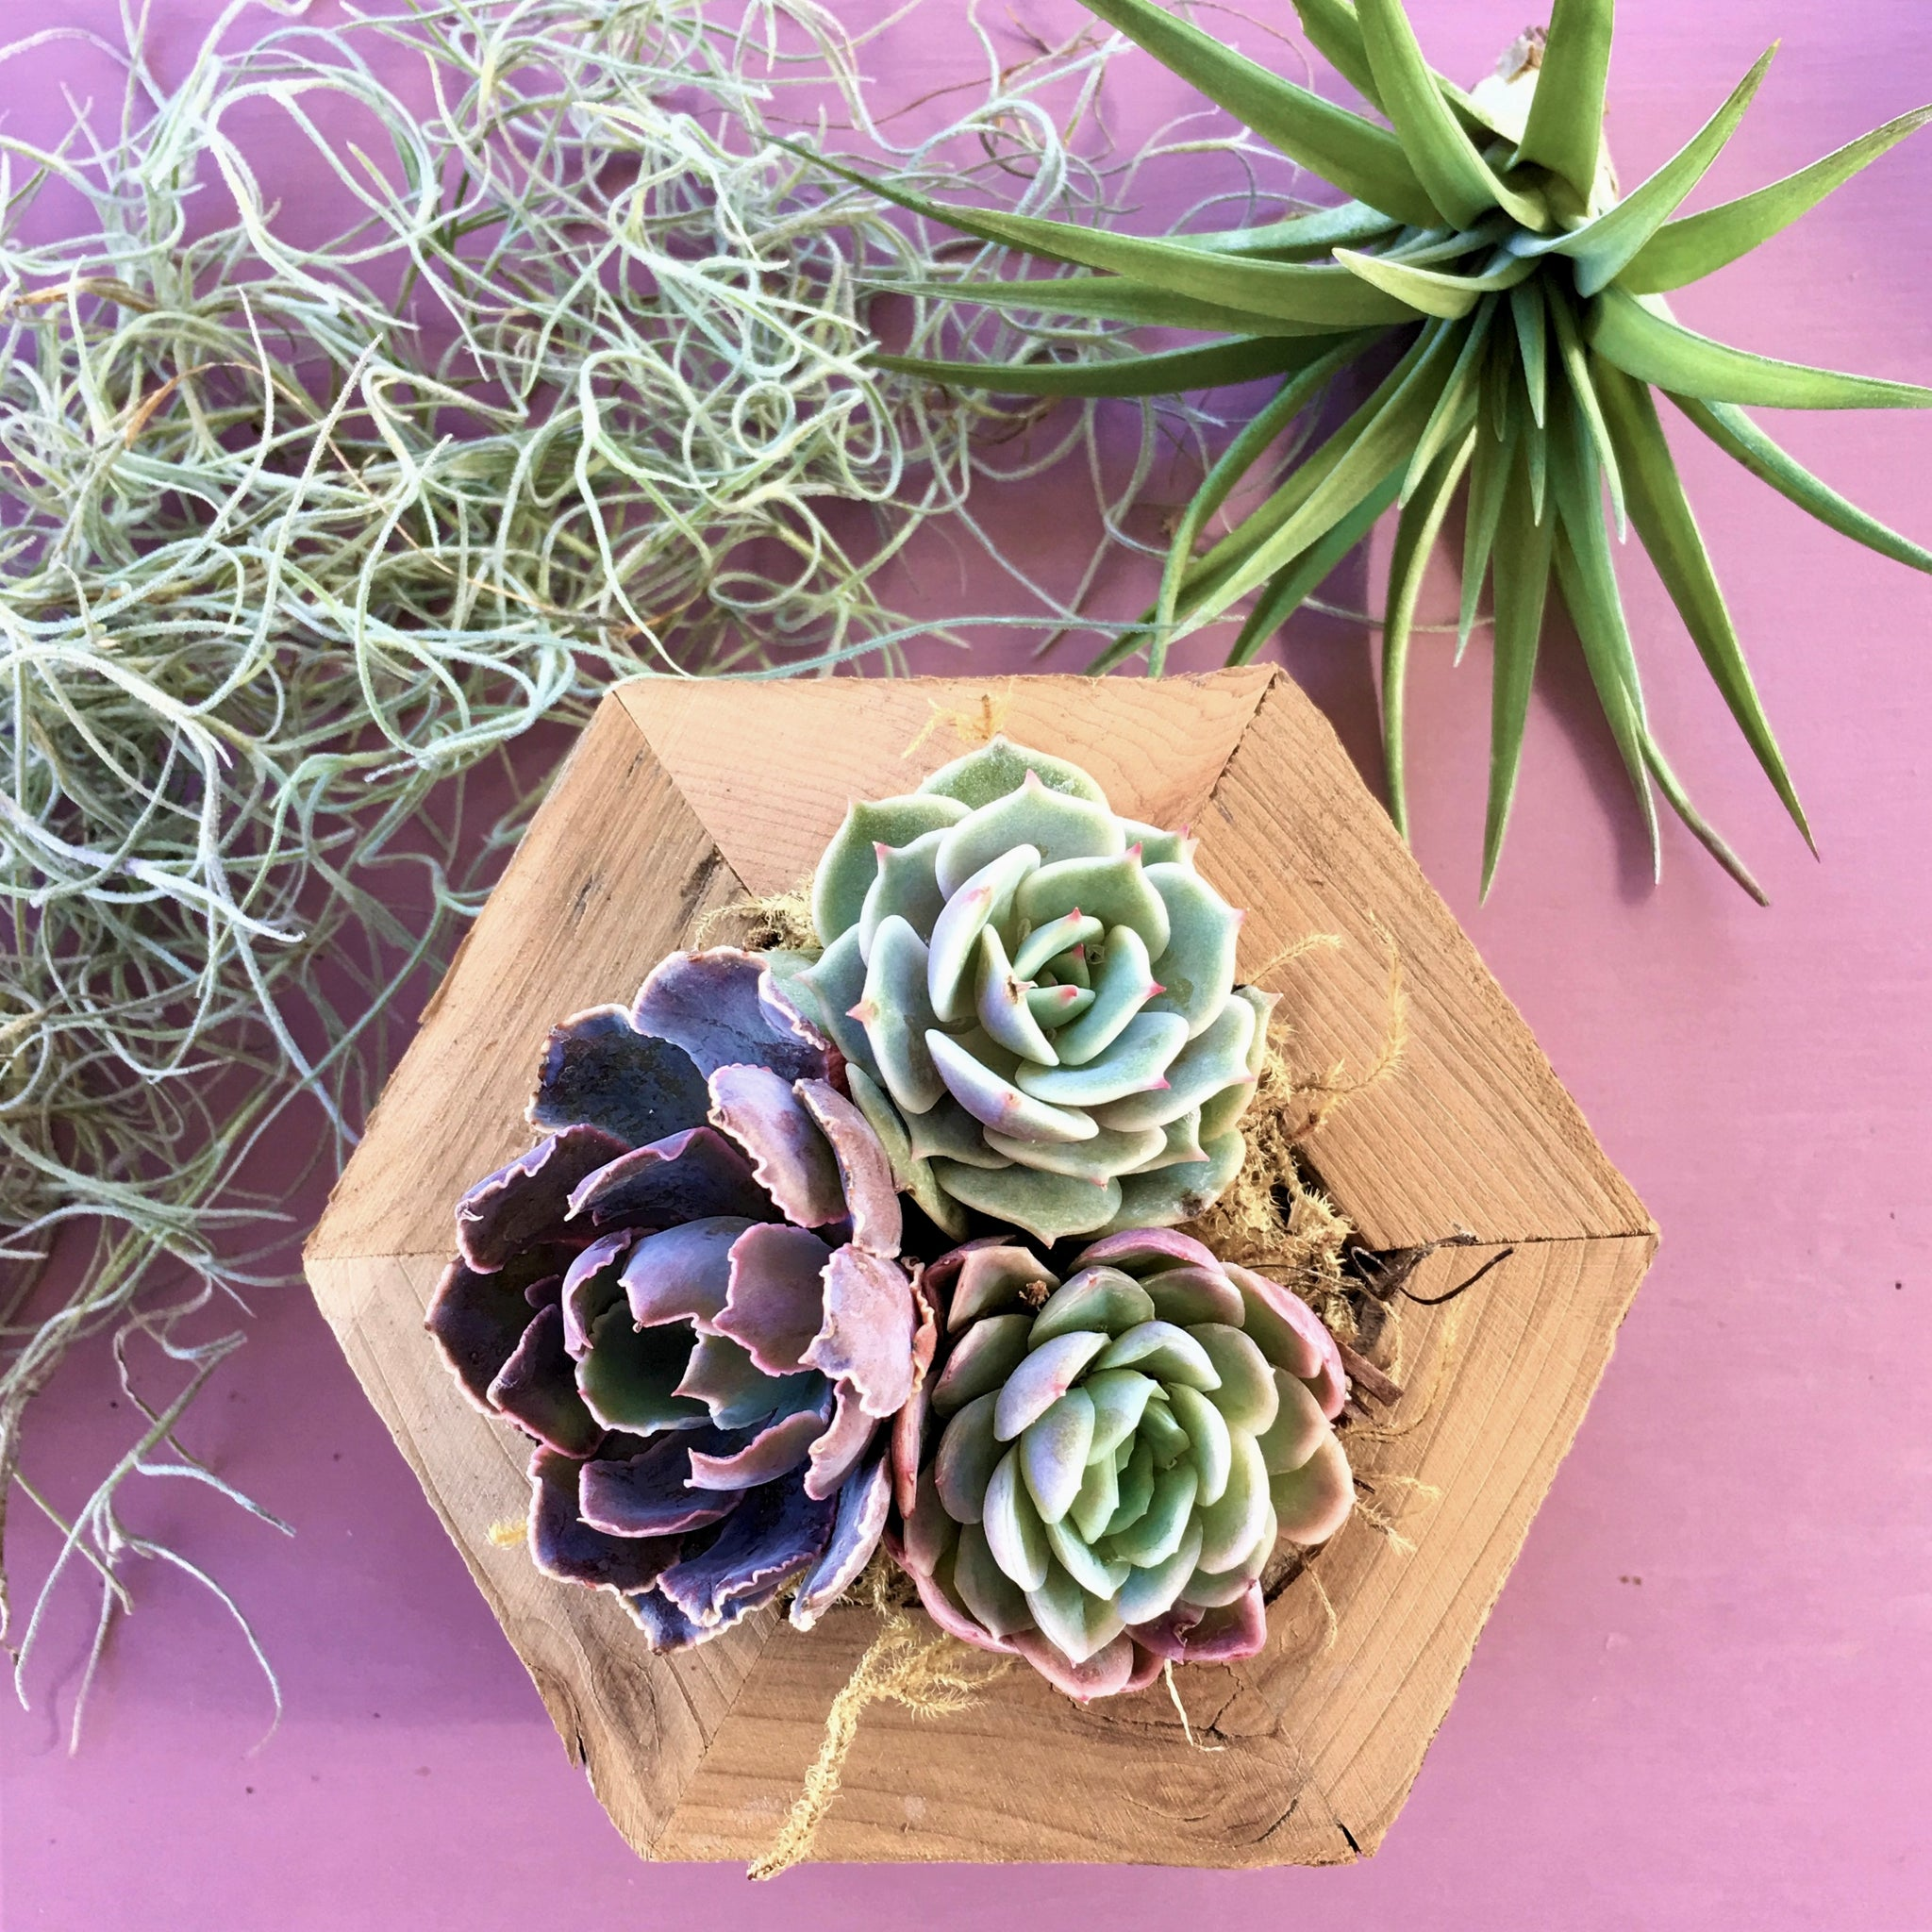 Succulent Gifts For Valentine S Day Succulent Gardens